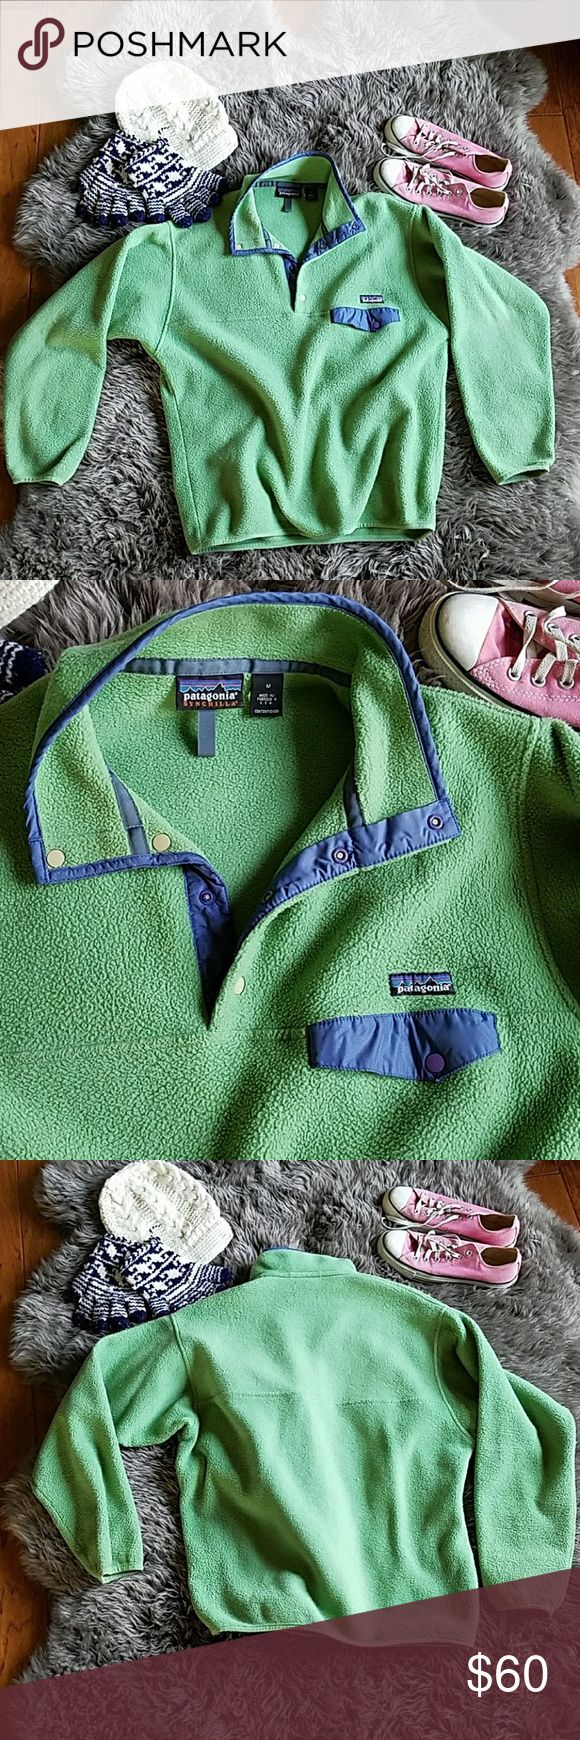 Vintage Patagonia Synchilla Snap-T pullover Awesome vintage Patagonia Synchilla Snap-T fleece pullover. Green with periwinkle blue accents. VGUC. Normal pilling, no stains, rips, etc. Size M. Patagonia Jackets & Coats